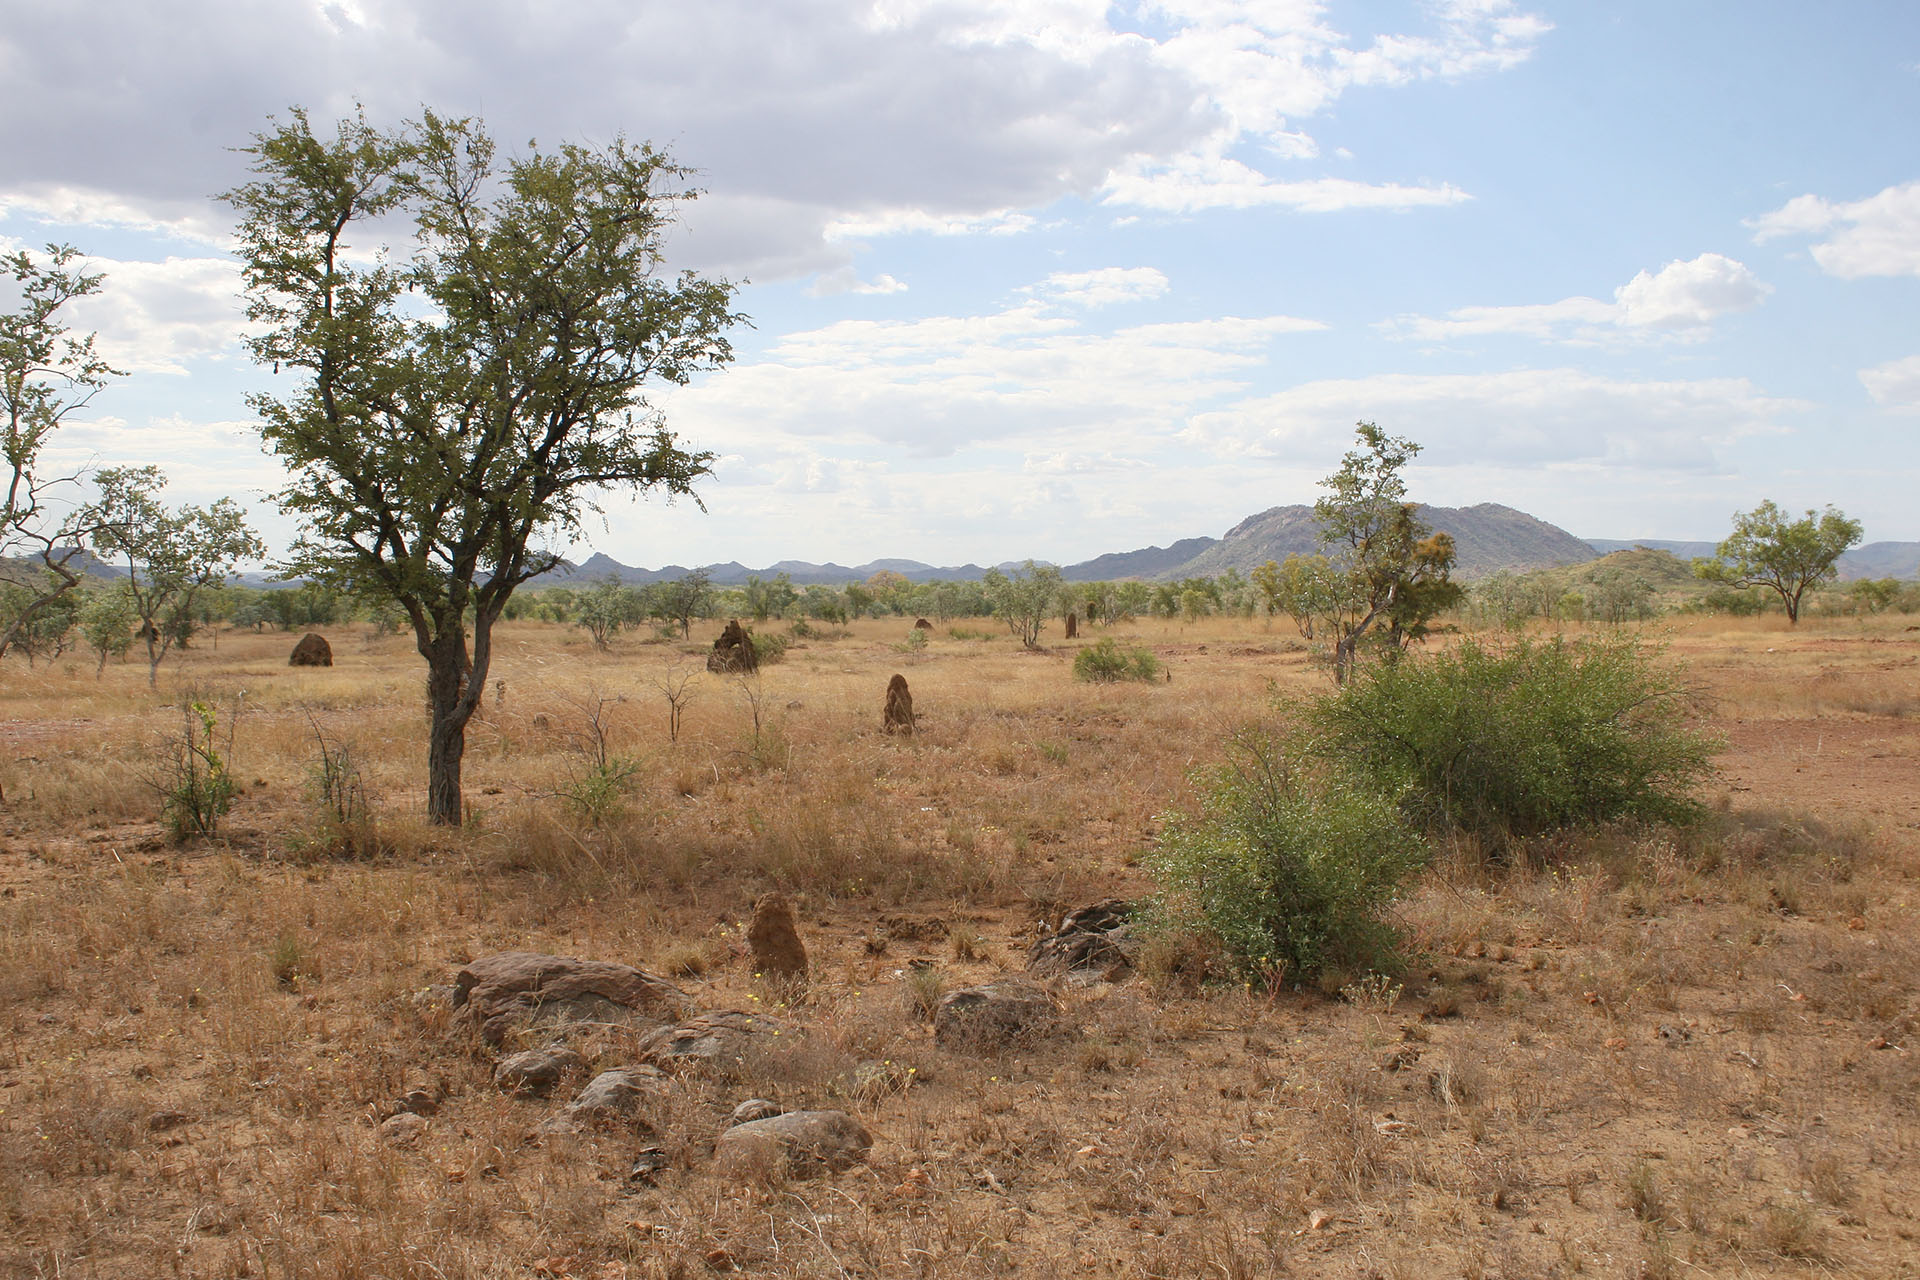 A typical Kimberley landscape.